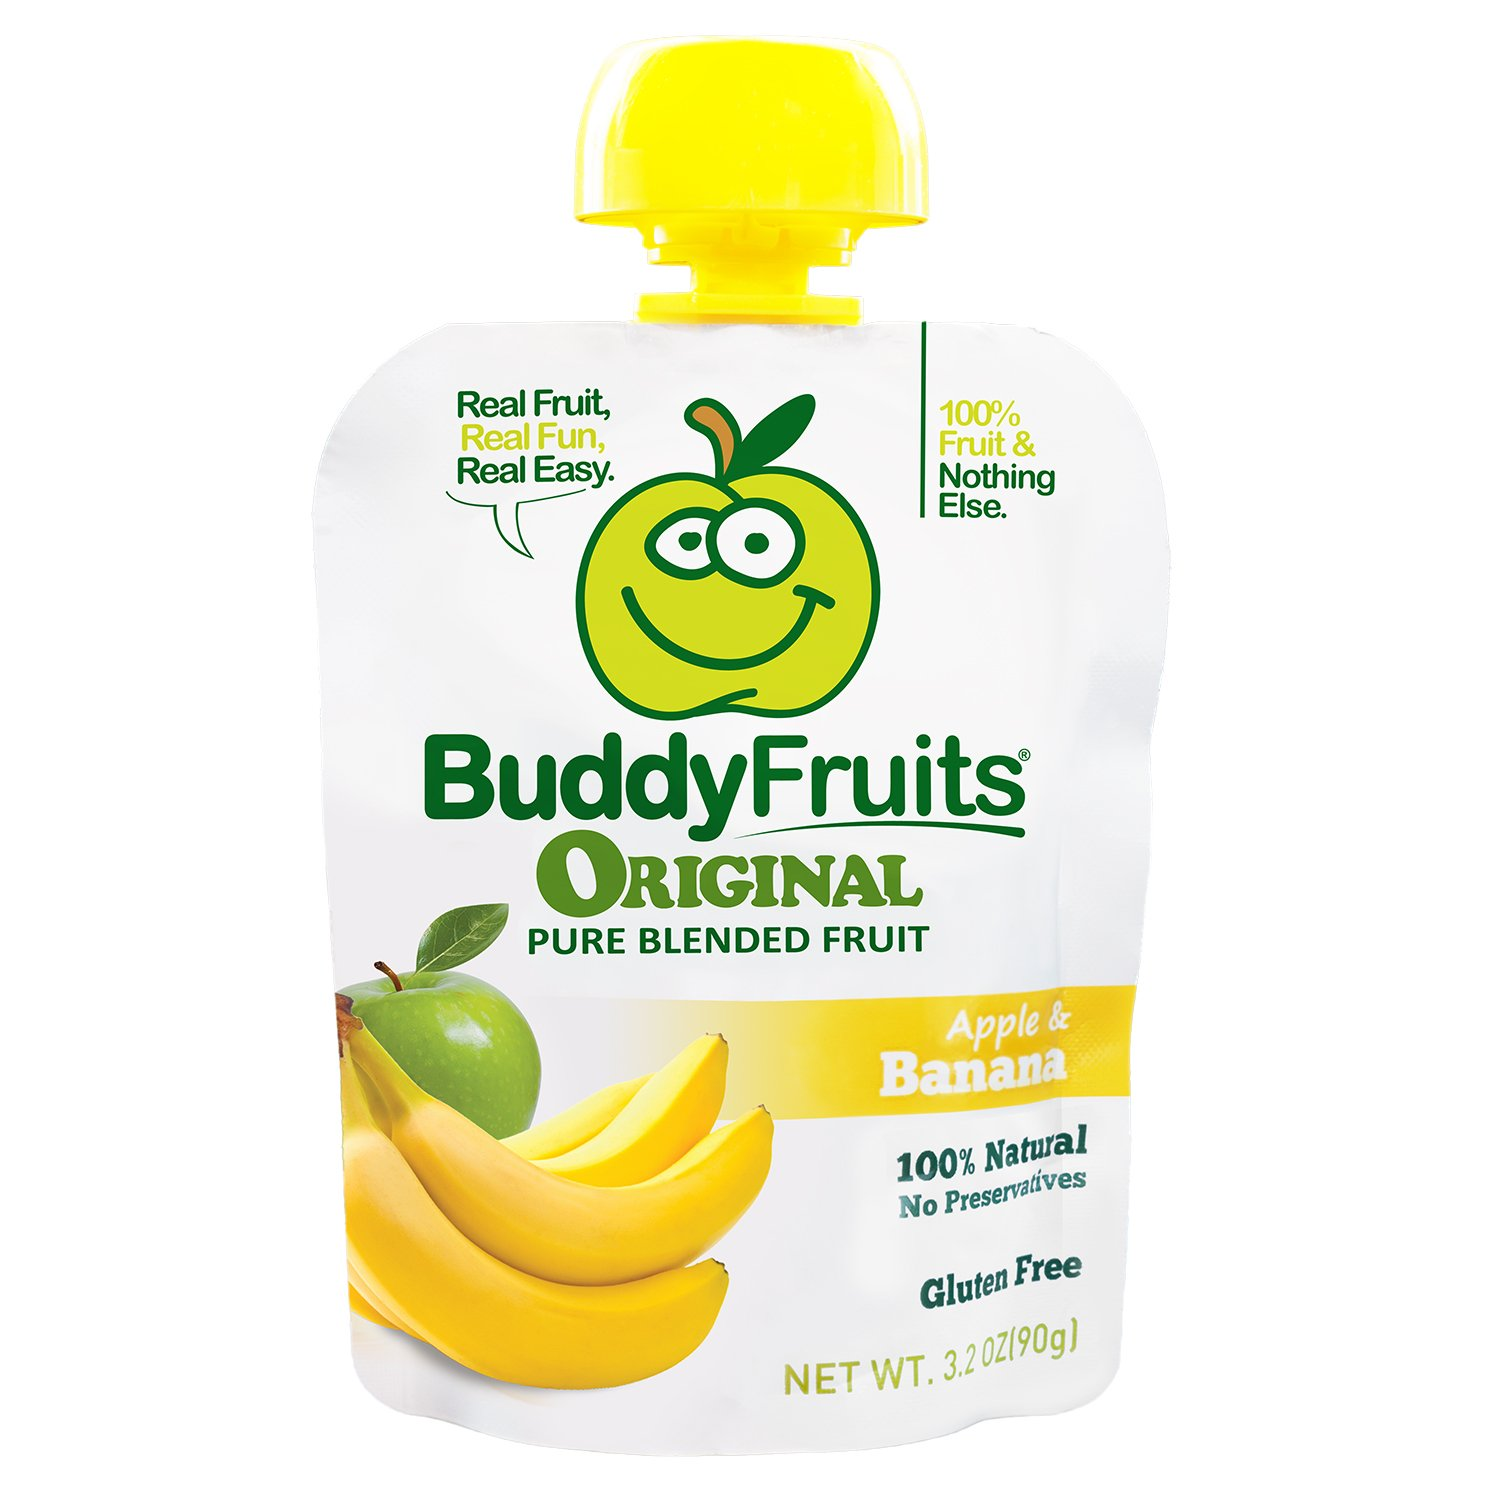 Buddy Fruits Pure Blended Fruit To Go, Banana and Apple, 3.2-Ounce Packages (Pack of 18)